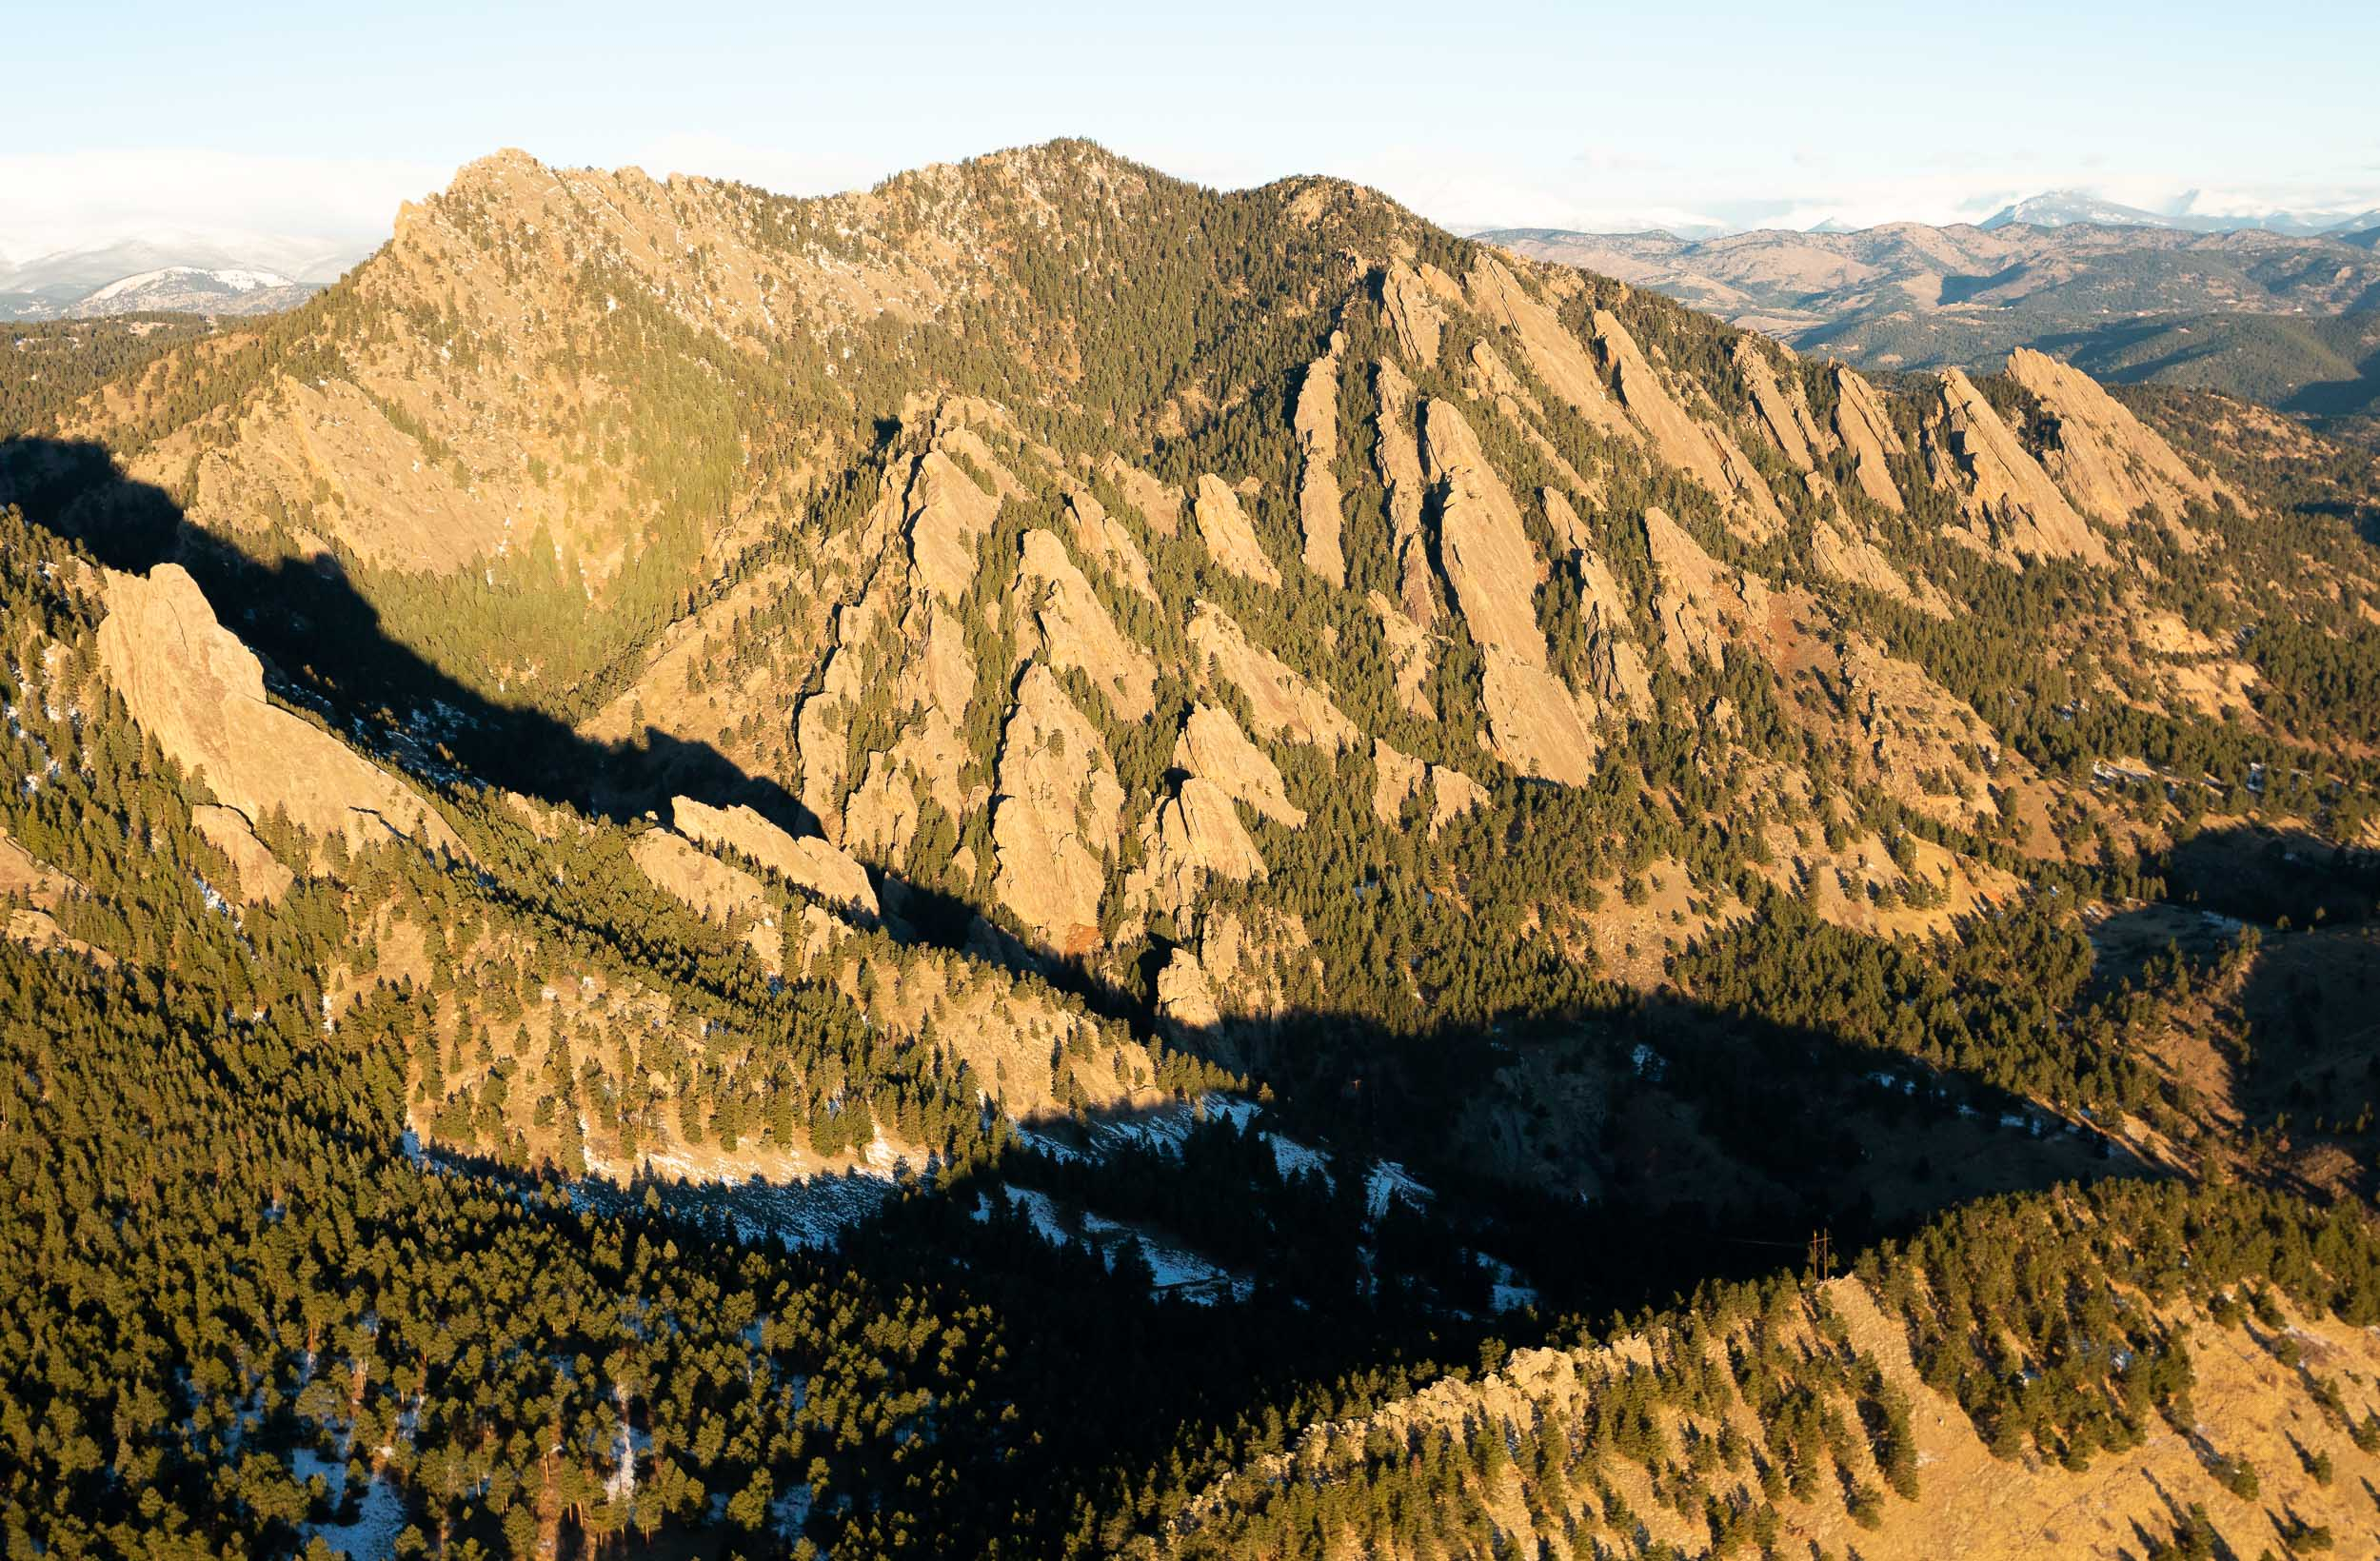 An aerial photography of the Flatirons in Boulder, Colorado, in the Rocky Mountains during the early morning hours just after sunrise with a little bit of snow on the ground.